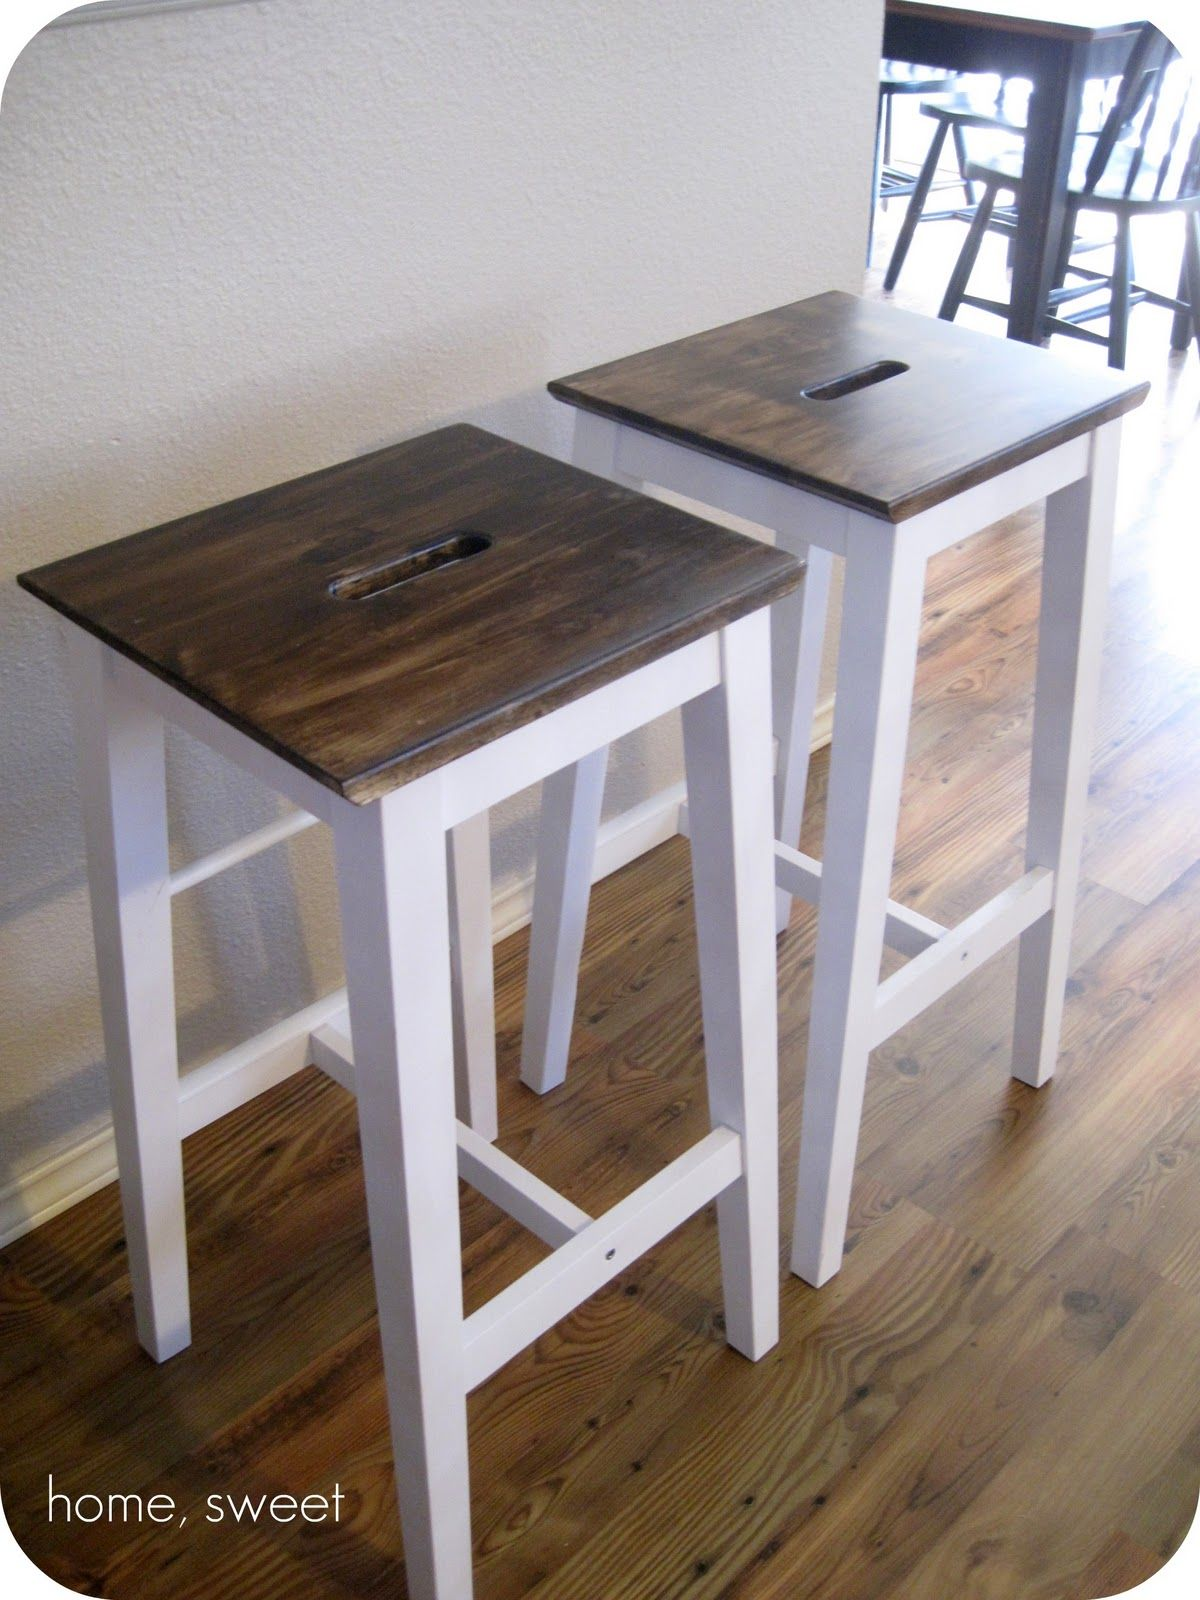 Home, Thrifty Home: Customized IKEA Barstools. Would Also Make A Nice Plant  Stand / Table